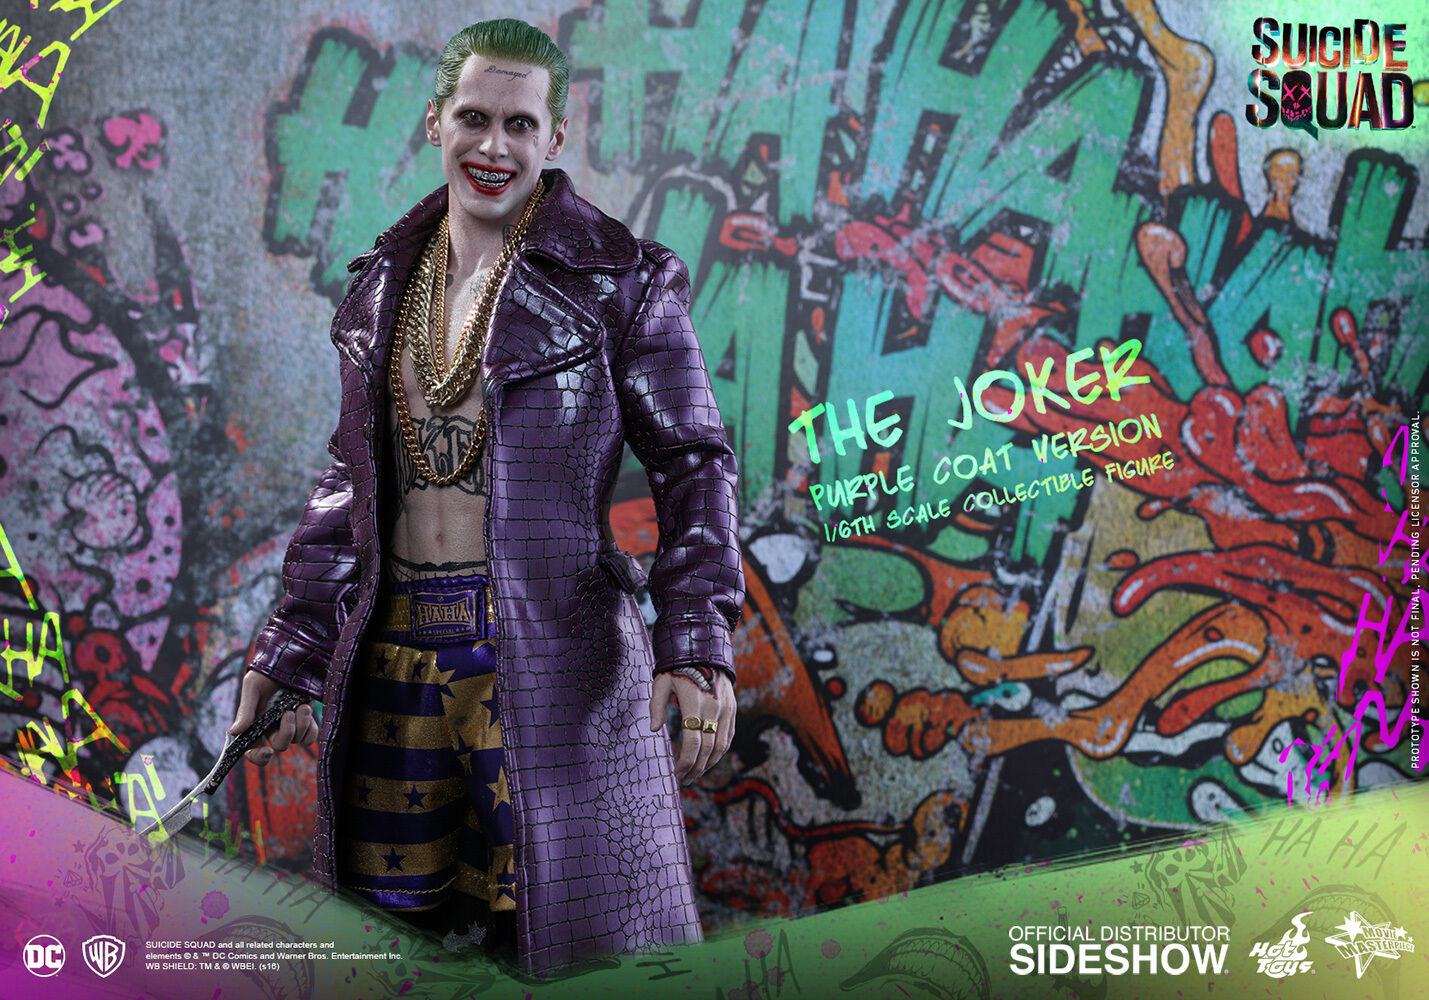 Hot Toys - Suicide Squad JaROT Leto as The Joker lila Coat 12